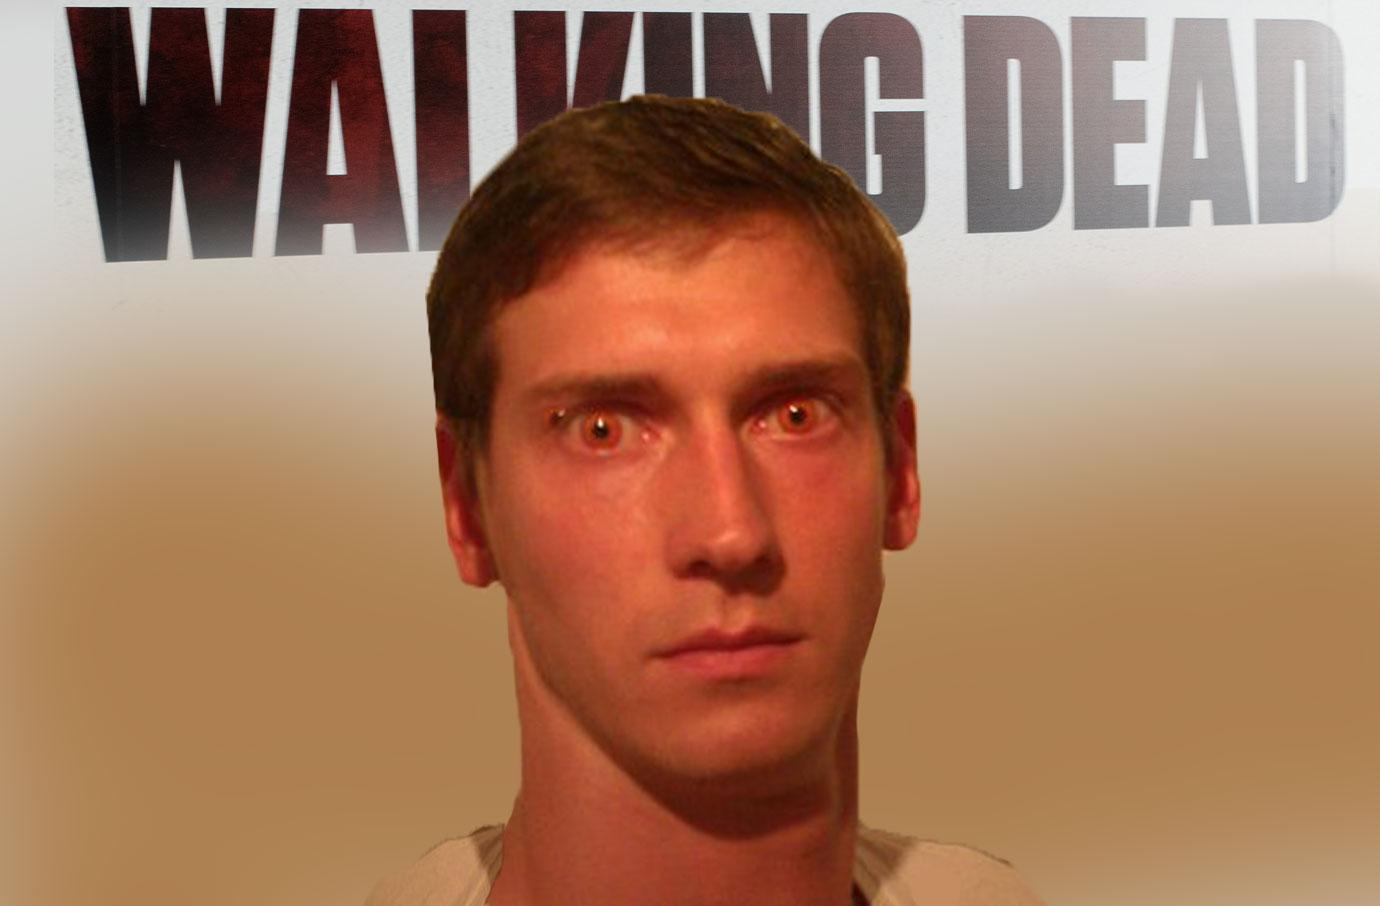 Walking Dead Stuntman John Bernecker Dies Set Accident Fall